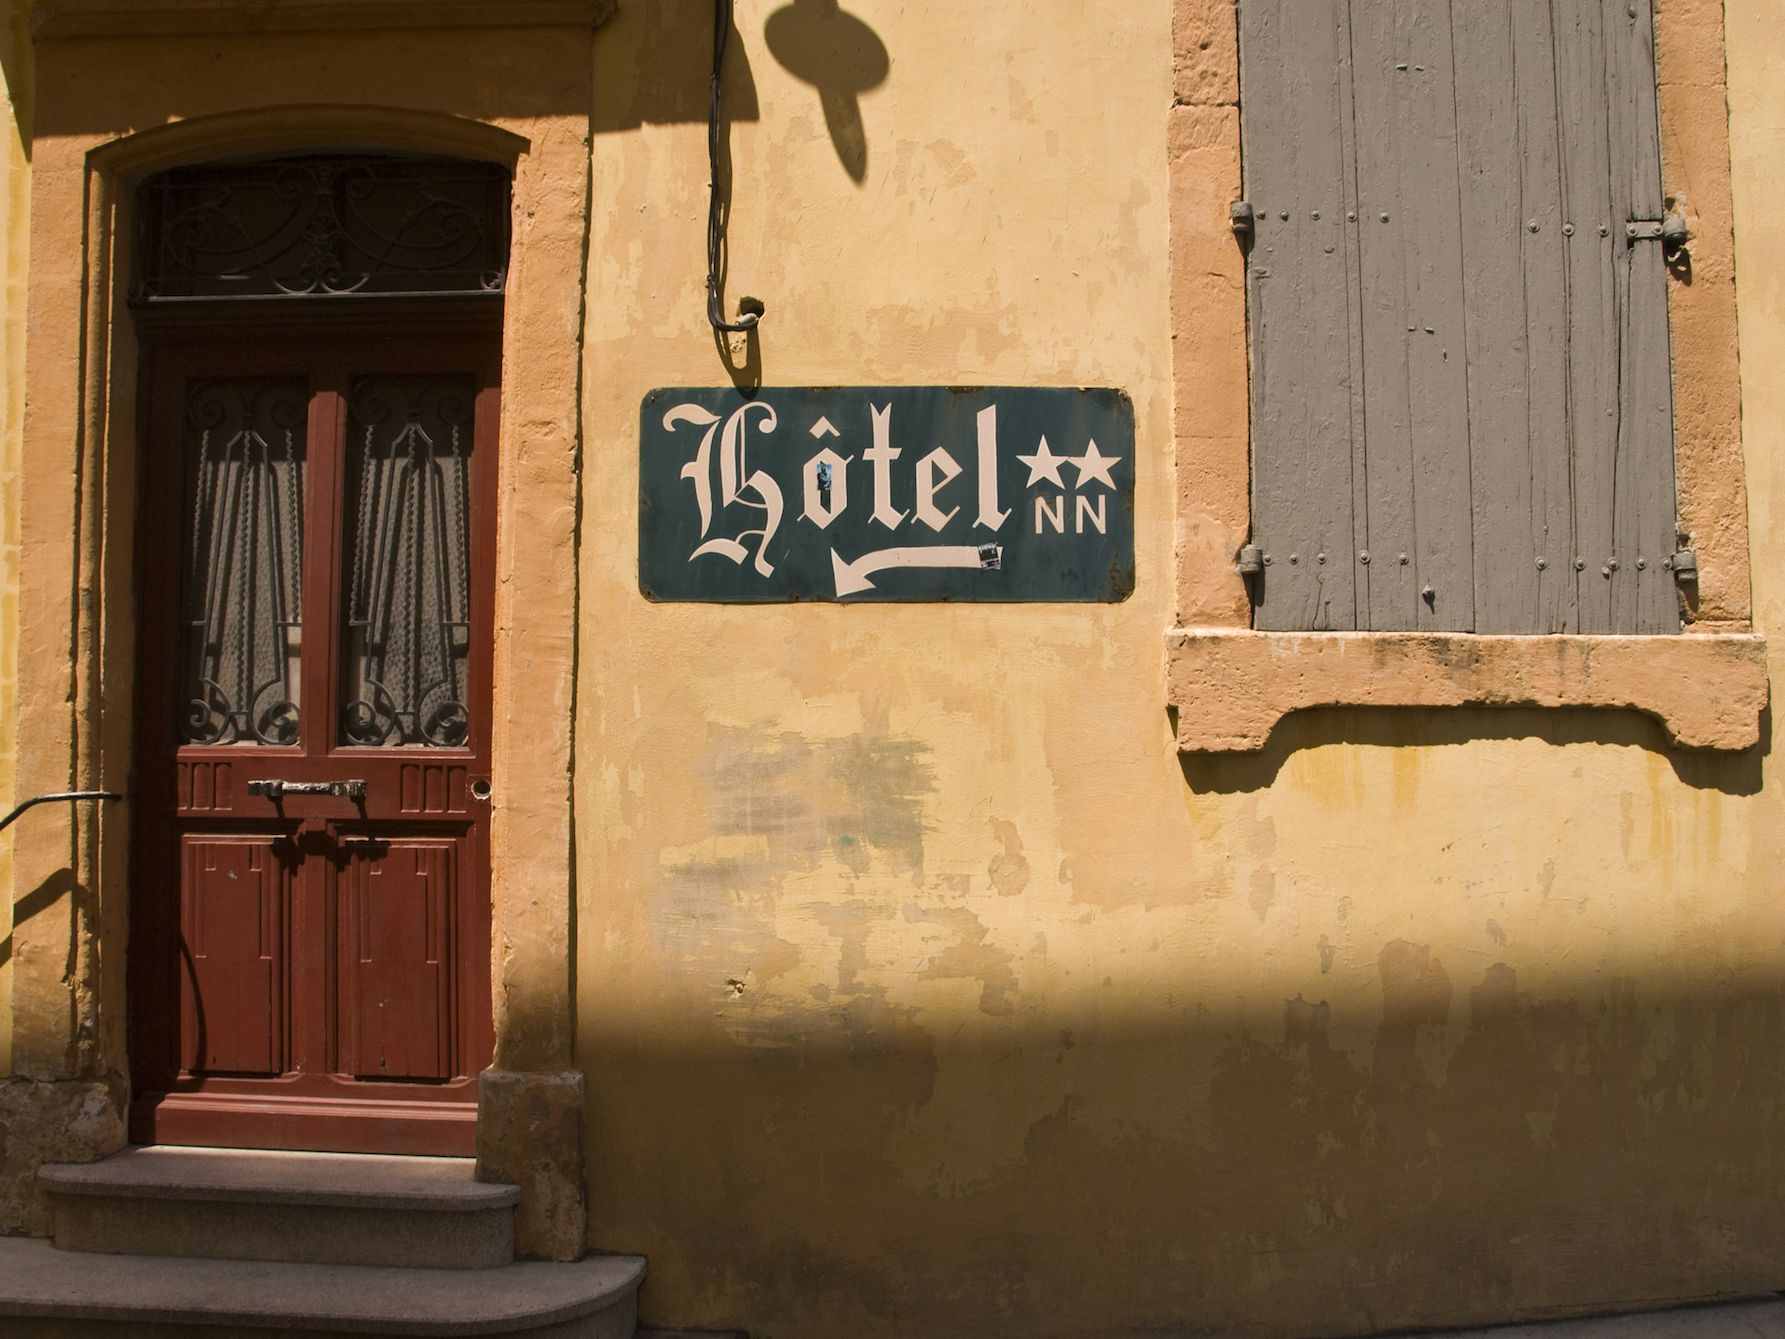 French Vocabulary Lesson: A Traveler's Hotel Stay